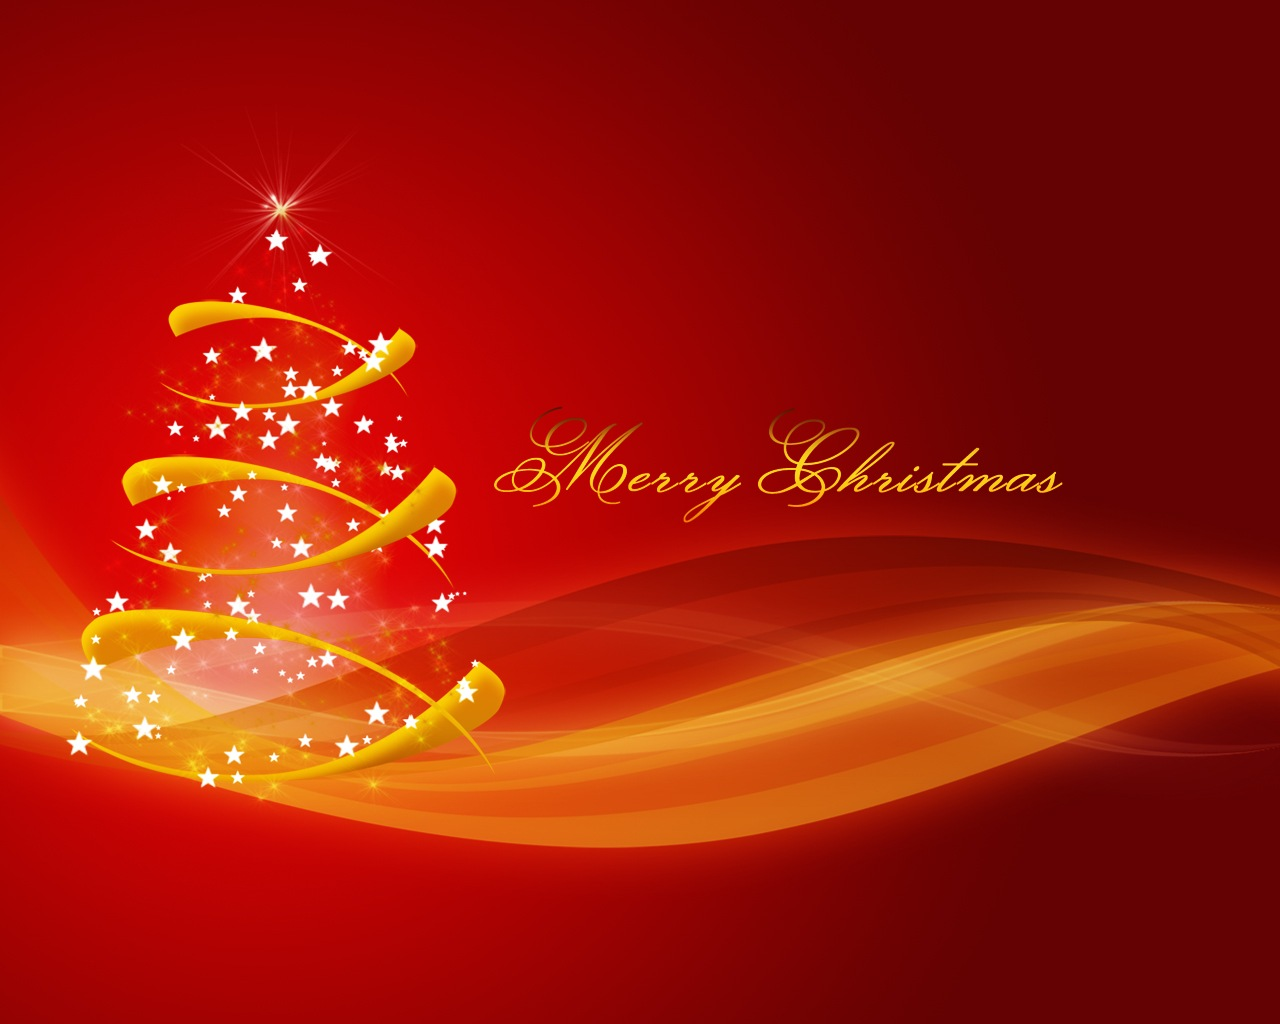 Desktop PC Wallpapers Download Christmas 2010 Wallpaper 1280x1024